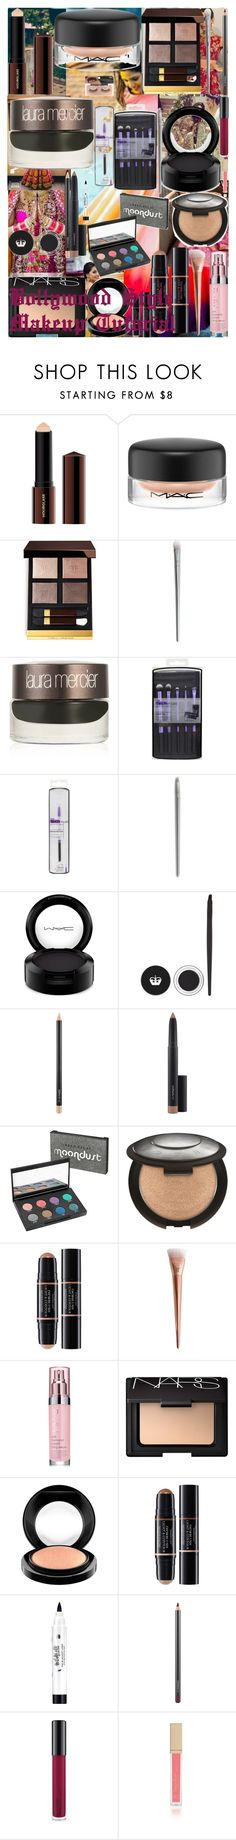 """""""Bollywood Style Makeup Tutorial"""" by oroartye-1 on Polyvore featuring beauty, Hourglass Cosmetics, MAC Cosmetics, Tom Ford, Laura Mercier, Rimmel, Urban Decay, Rodial, NARS Cosmetics and Christian Dior"""